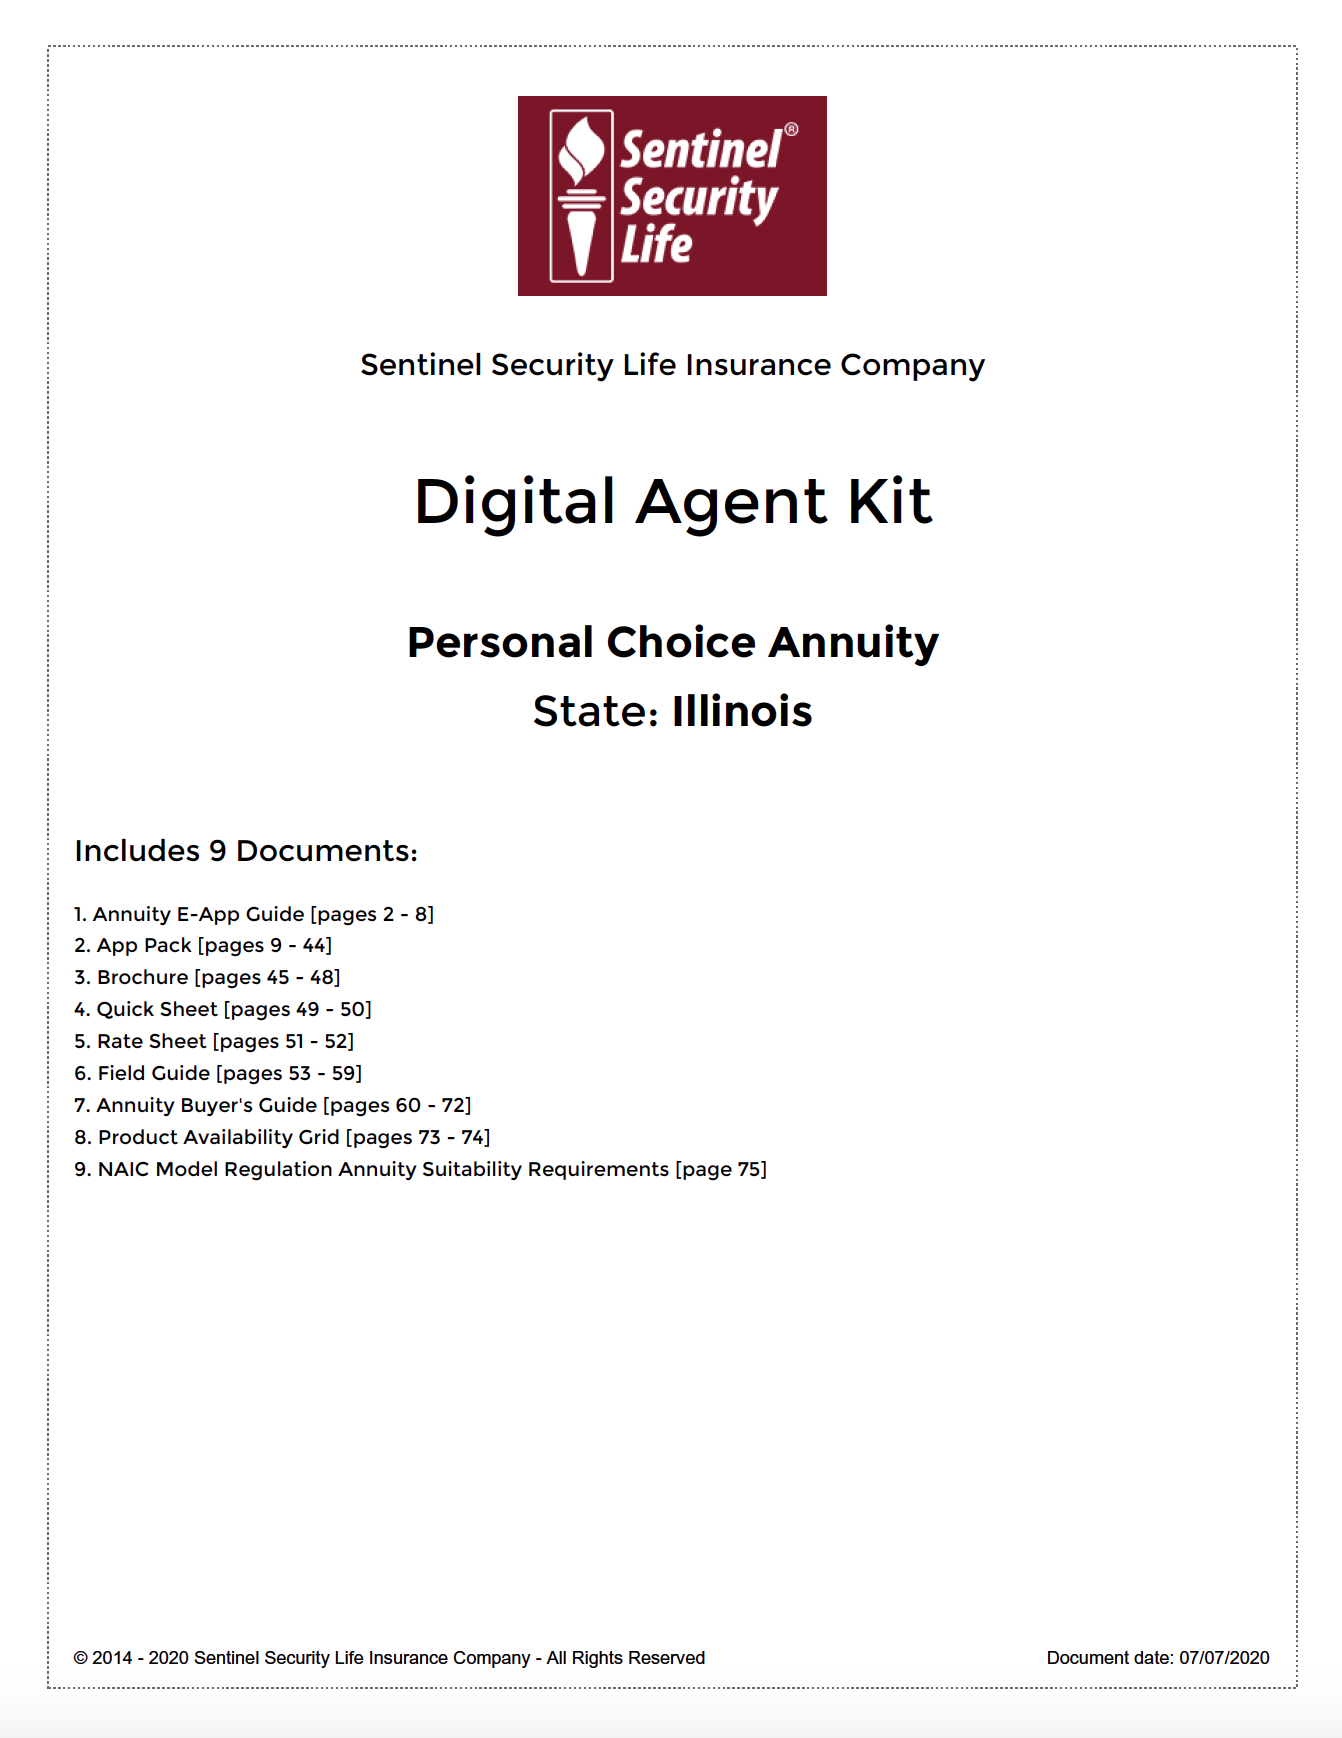 Sentinel Offering Digital Agent Kit, a Starter Pack of Marketing Materials